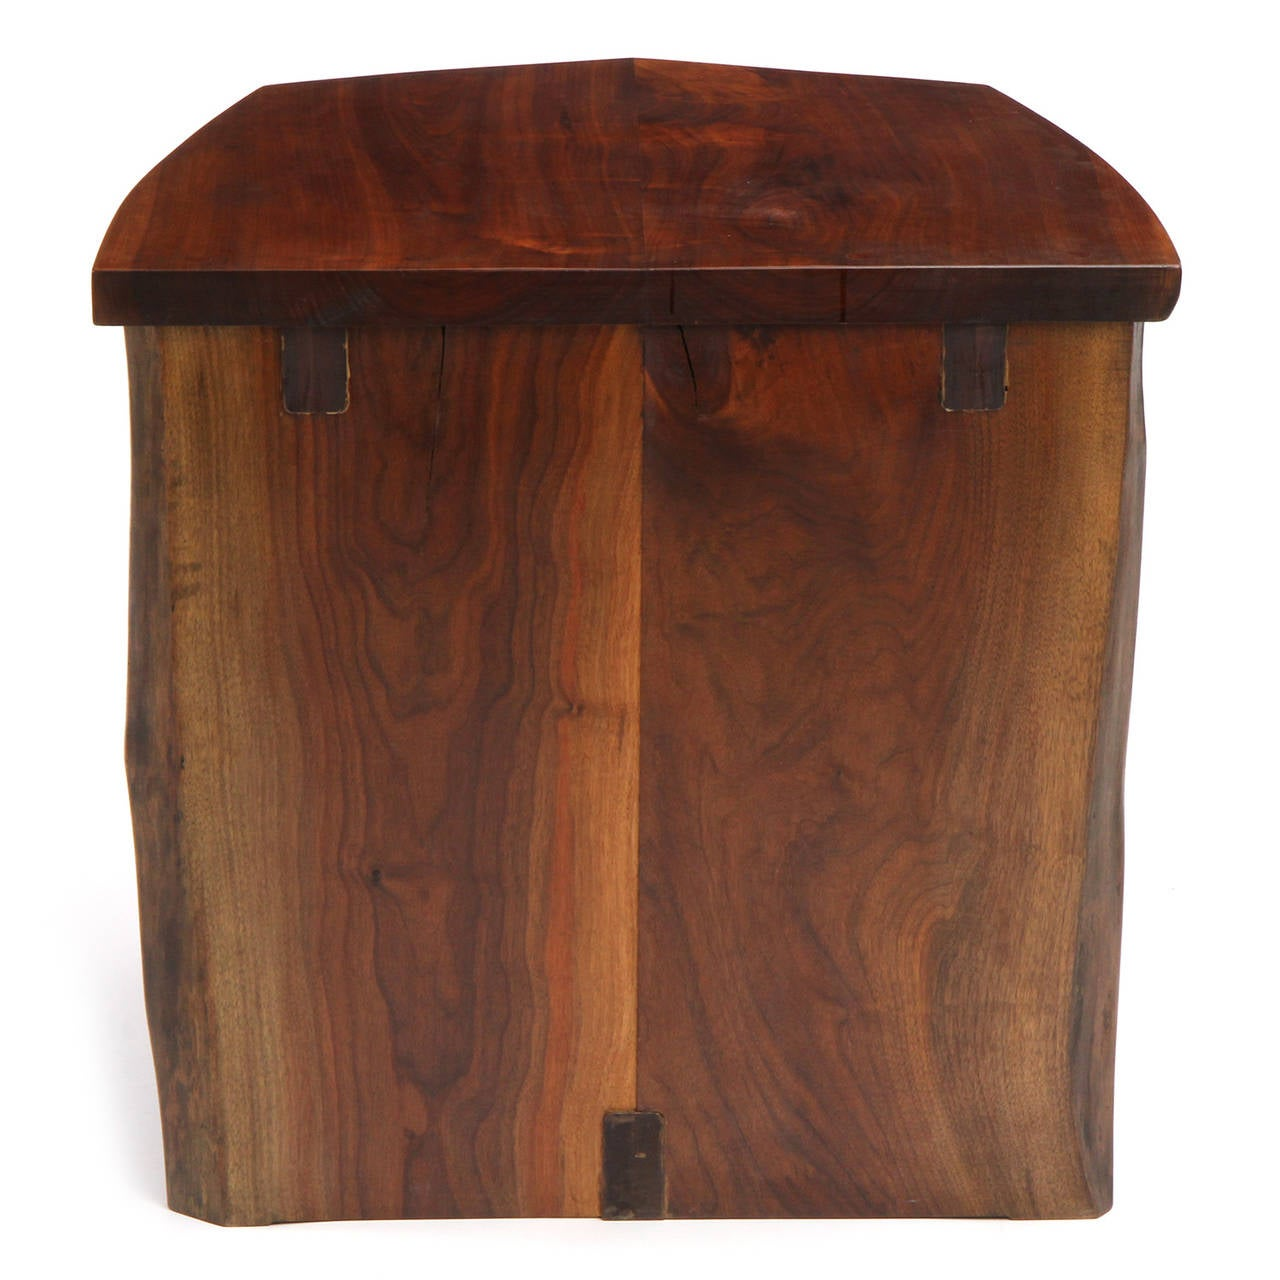 unique end table by george nakashima image 4